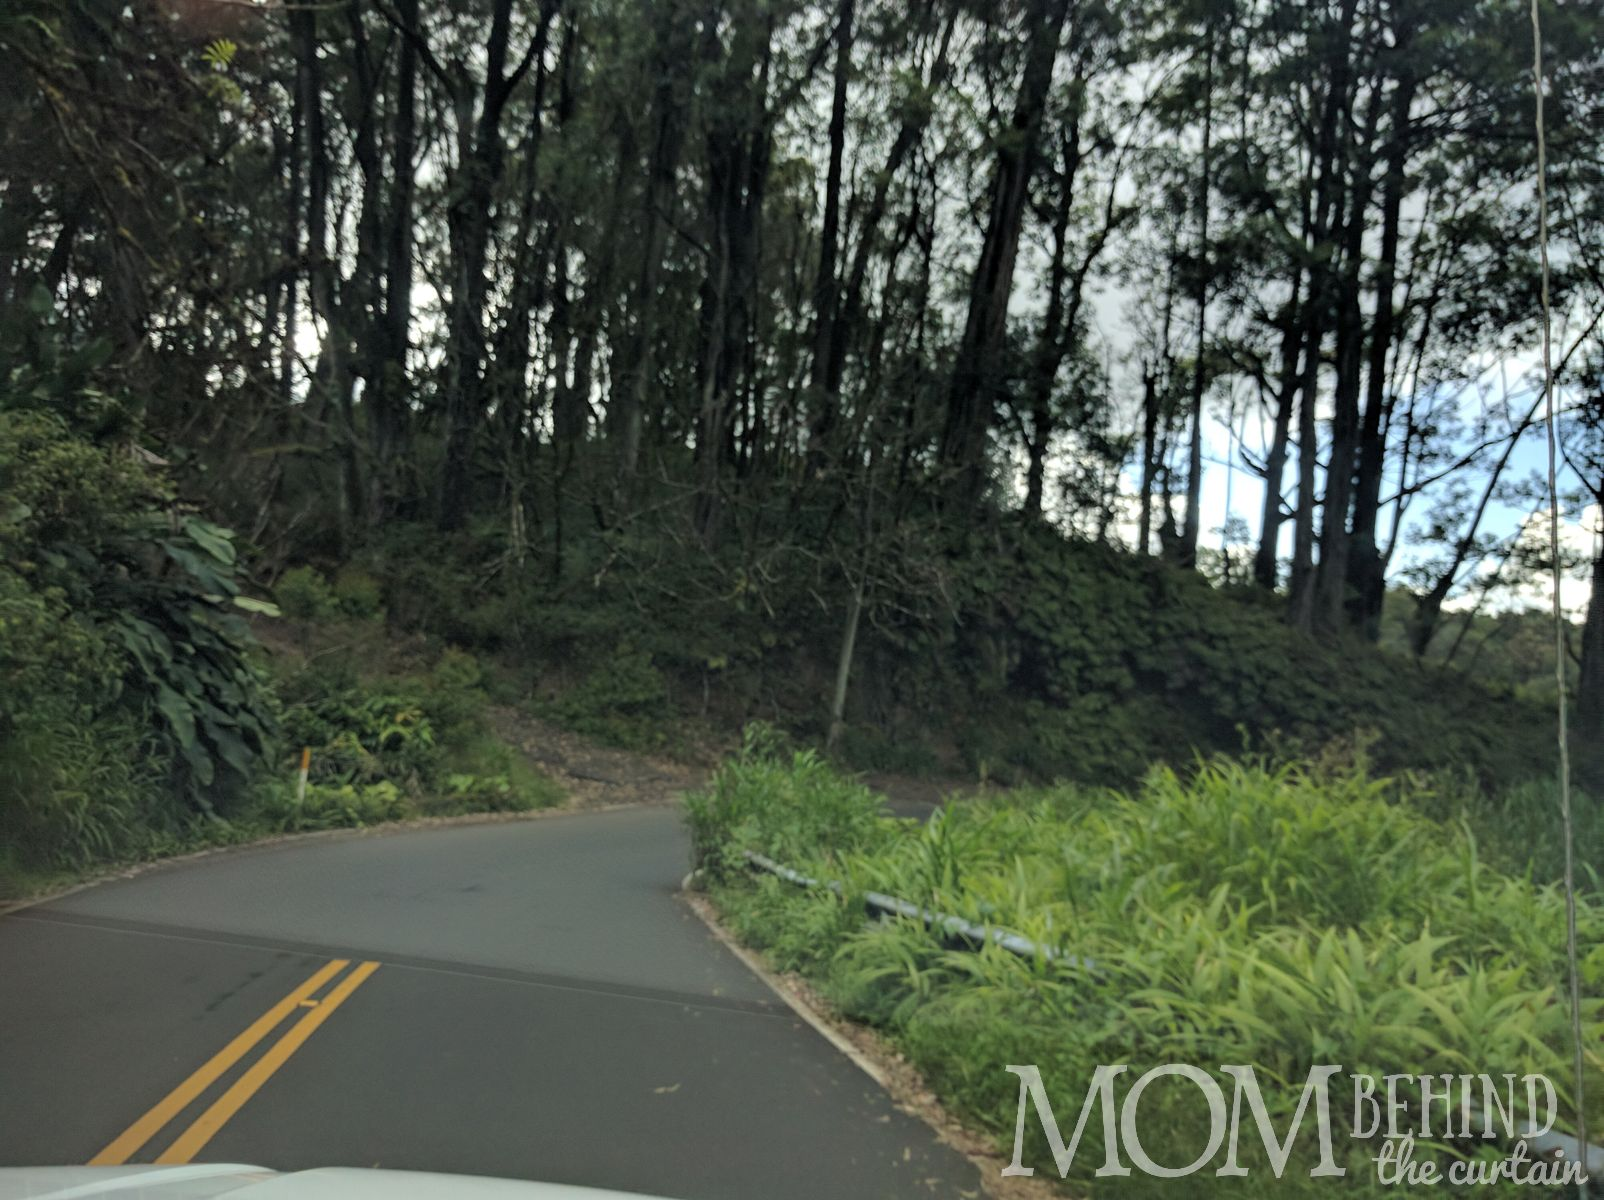 Road to Hana narrows to a single lane on curves and bridges.